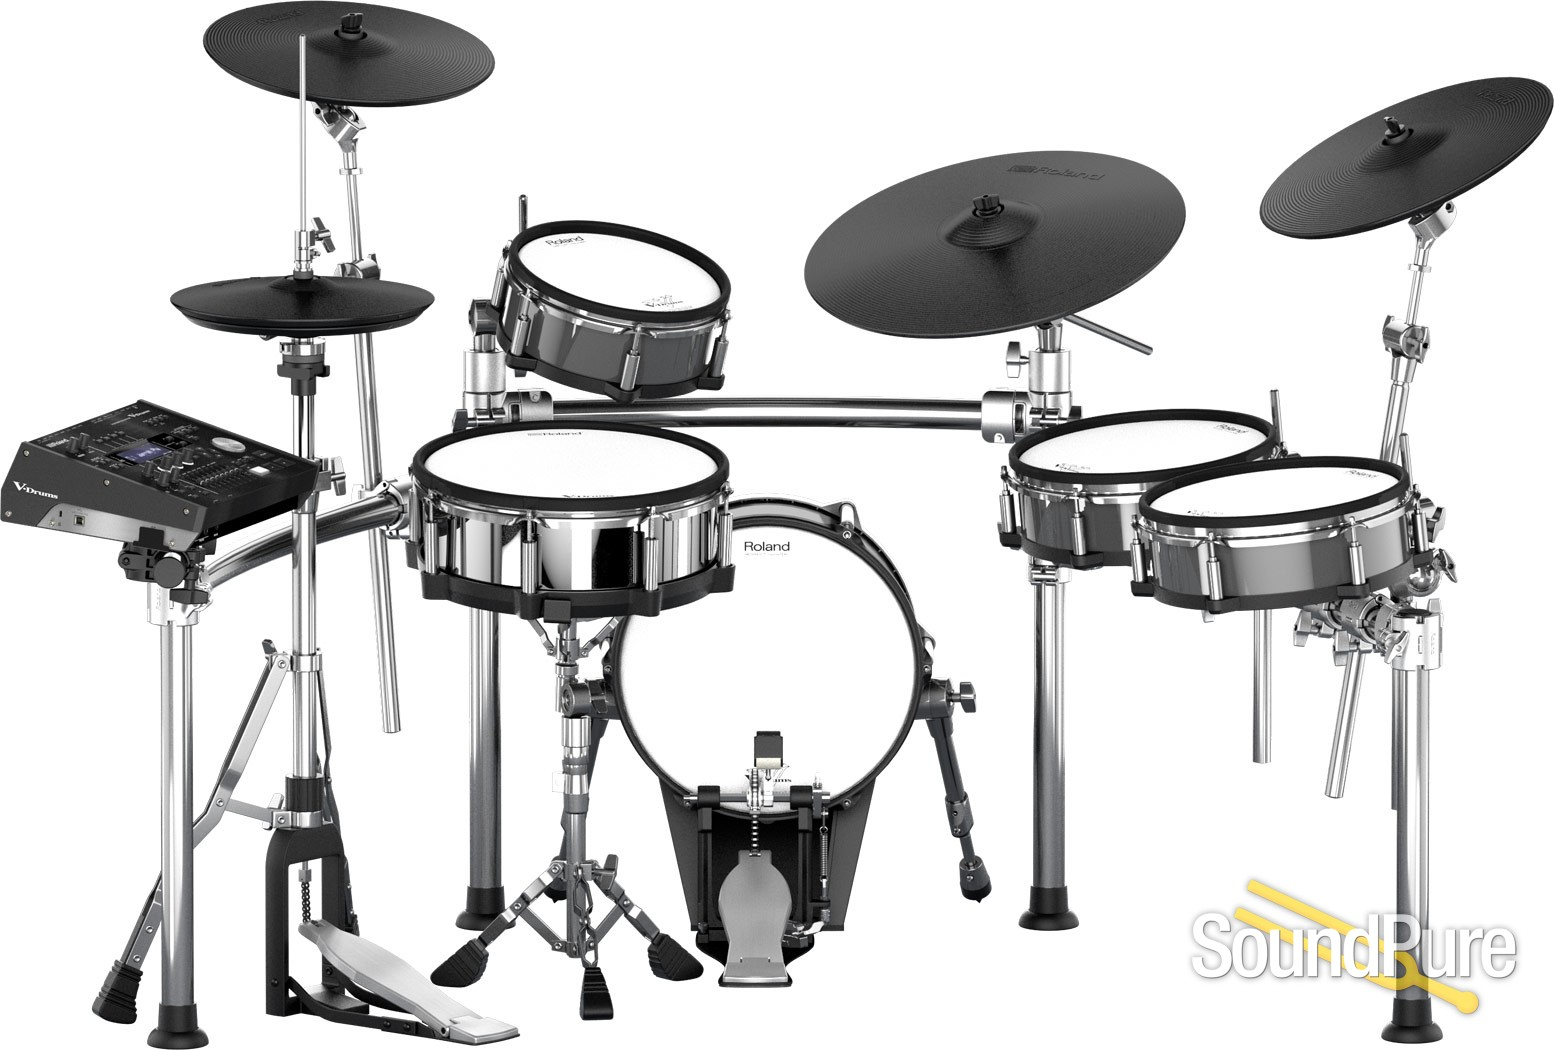 Roland td 50kv s v drums electronic drum set soundpure roland td 50kv s v drums electronic drum set from roland solutioingenieria Image collections